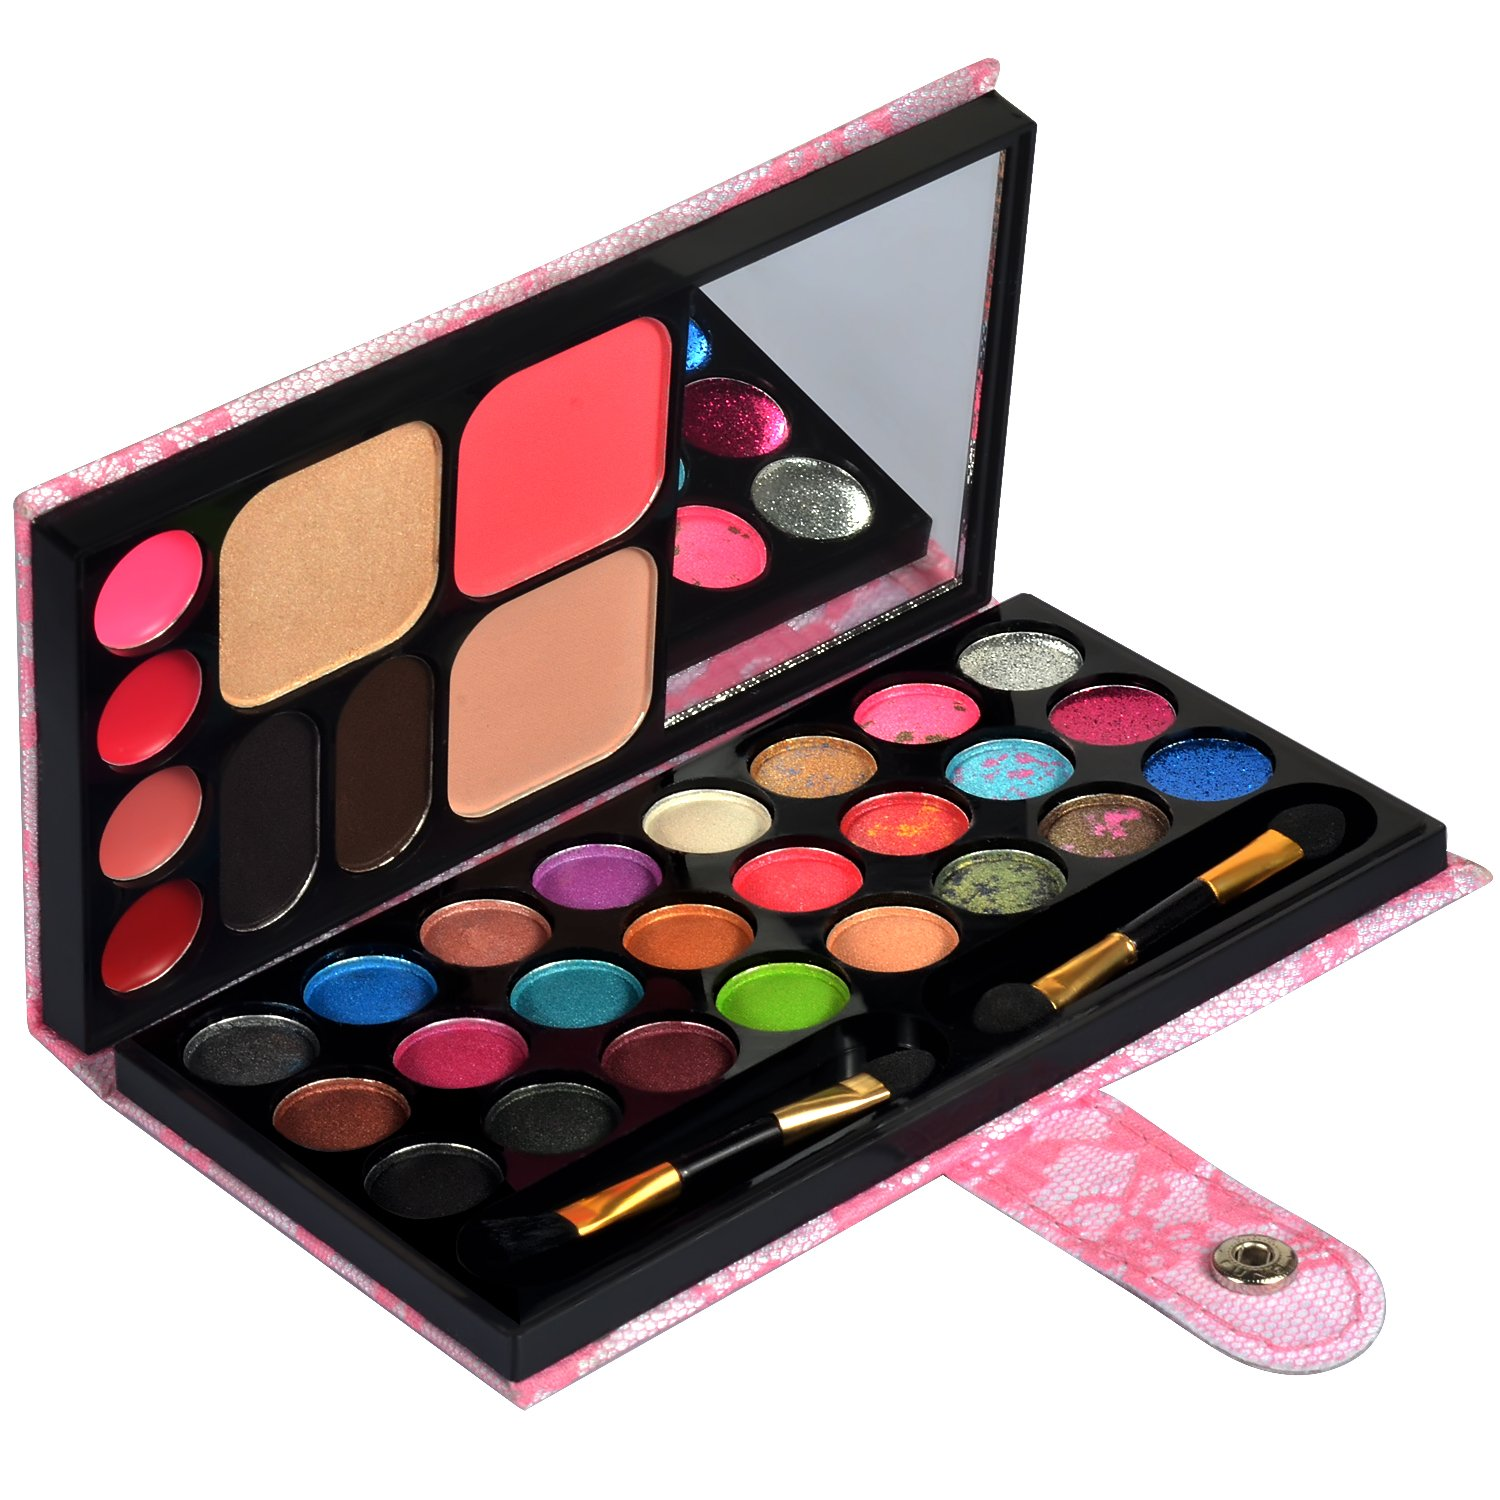 Amazon.com : Ecvtop All-in-one Makeup Kit Professional Eye ...